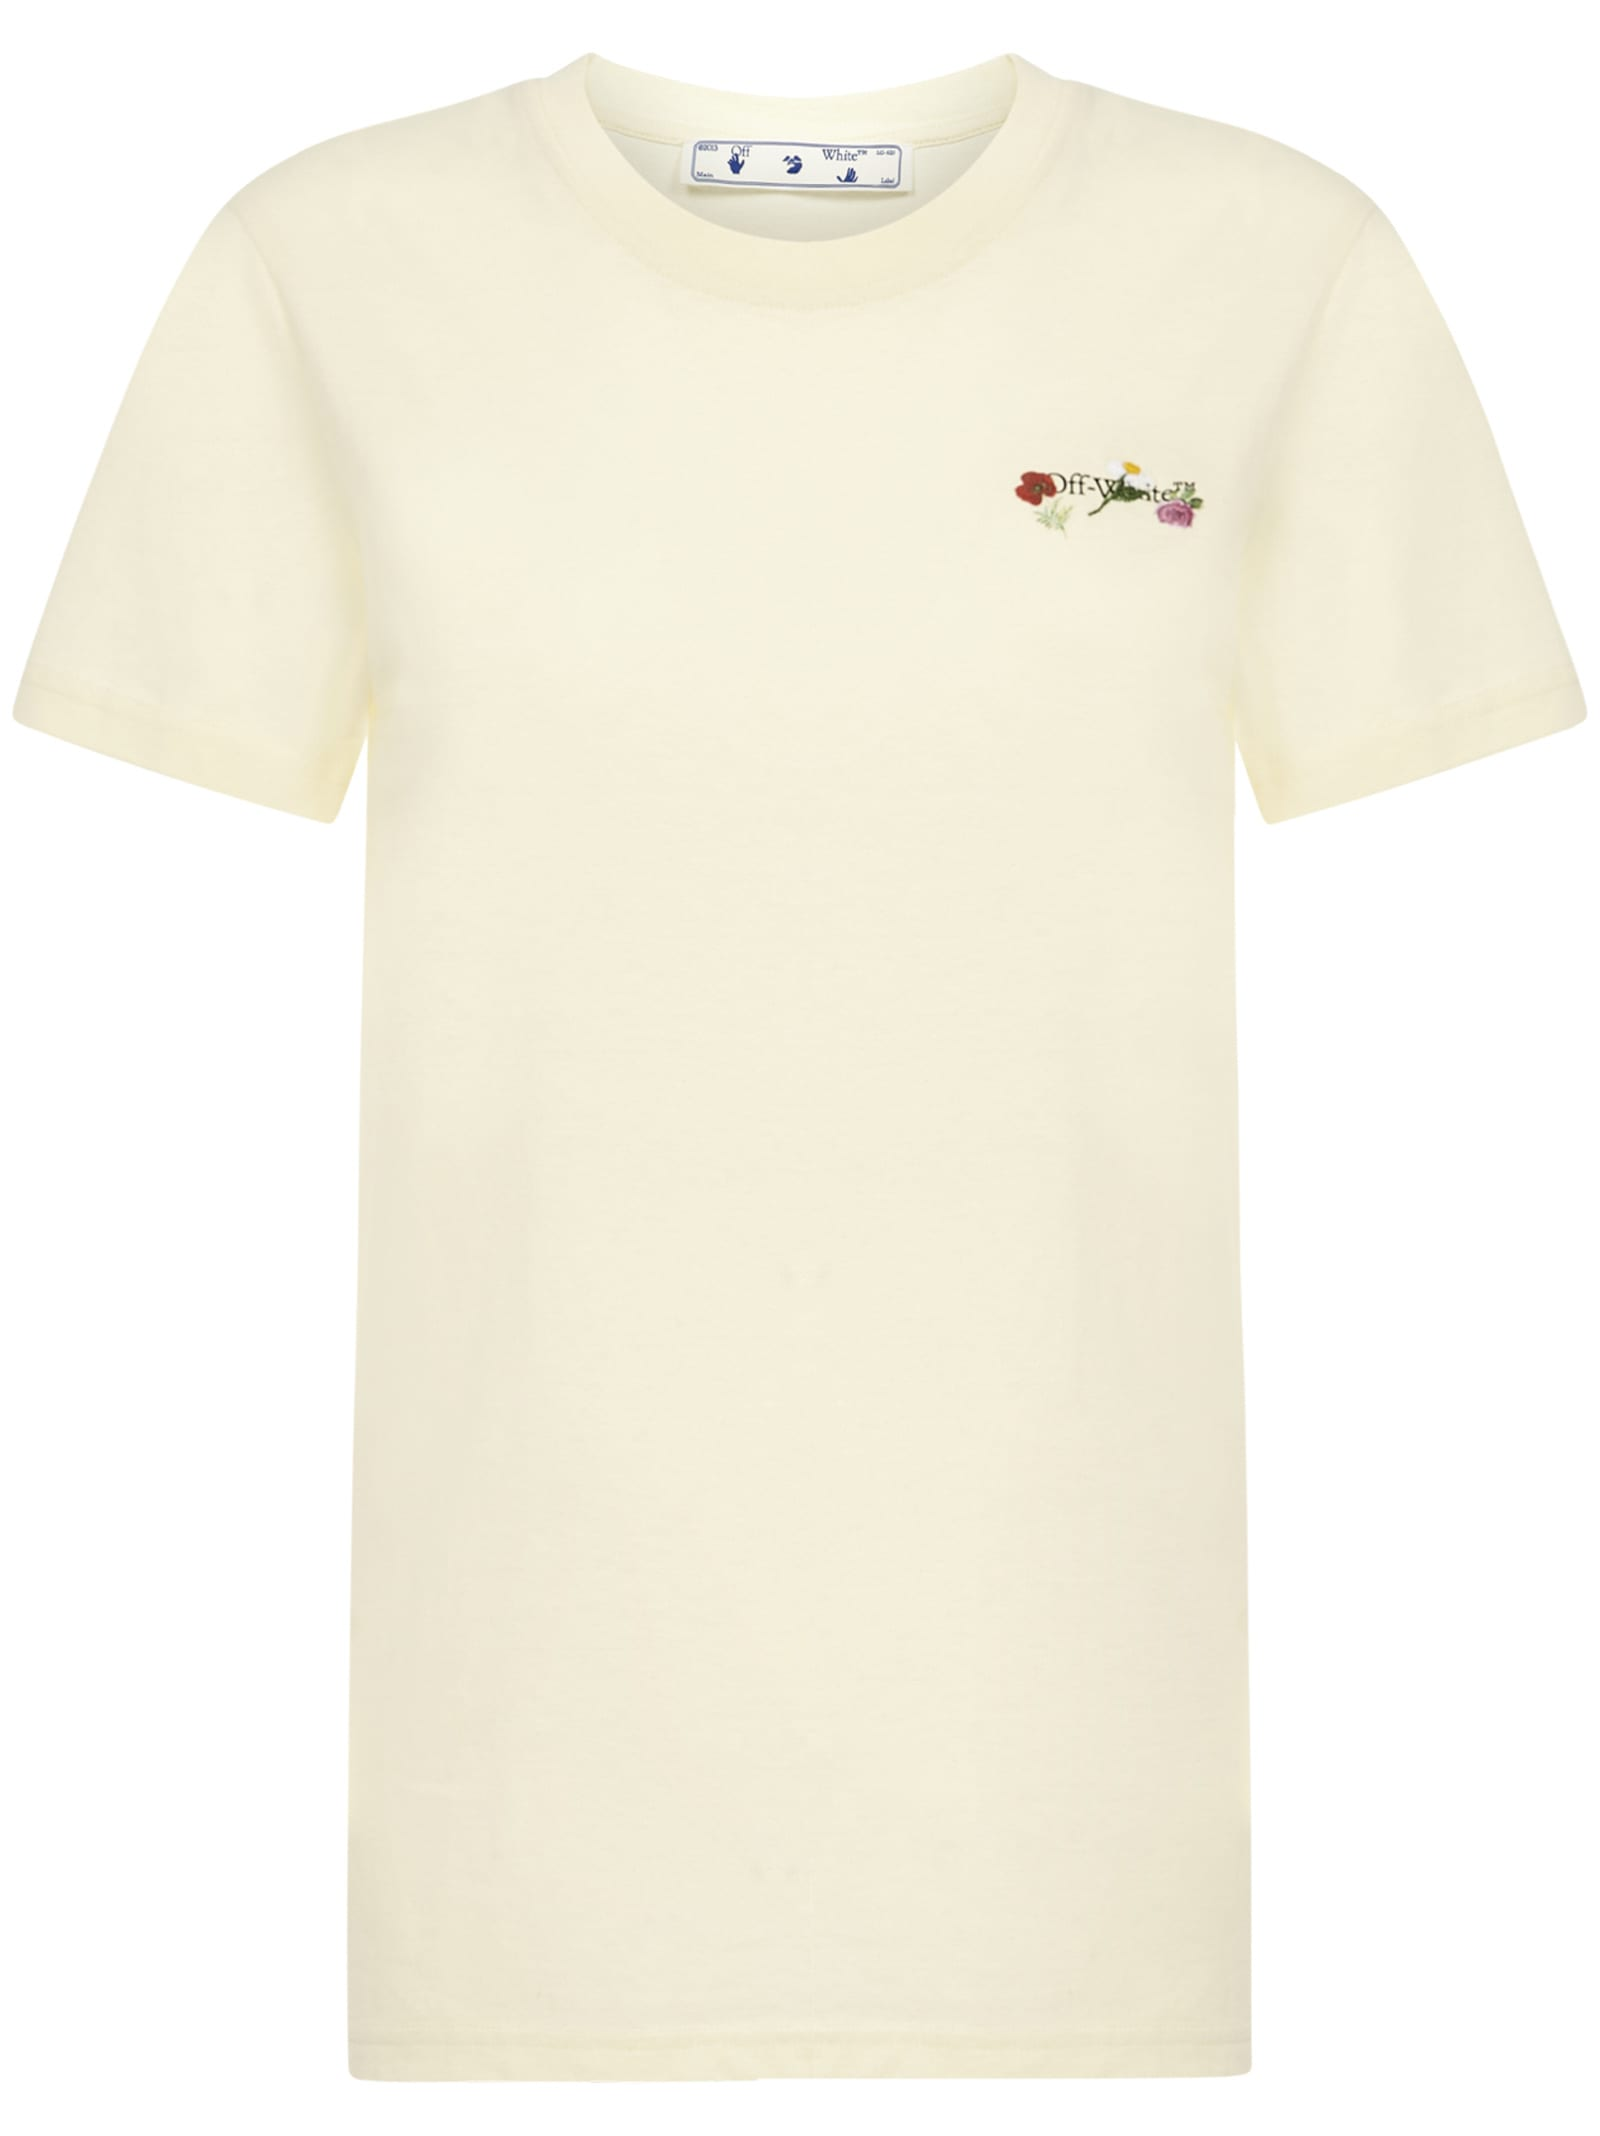 Off-white Embroidered Flowers Arrow T-shirt